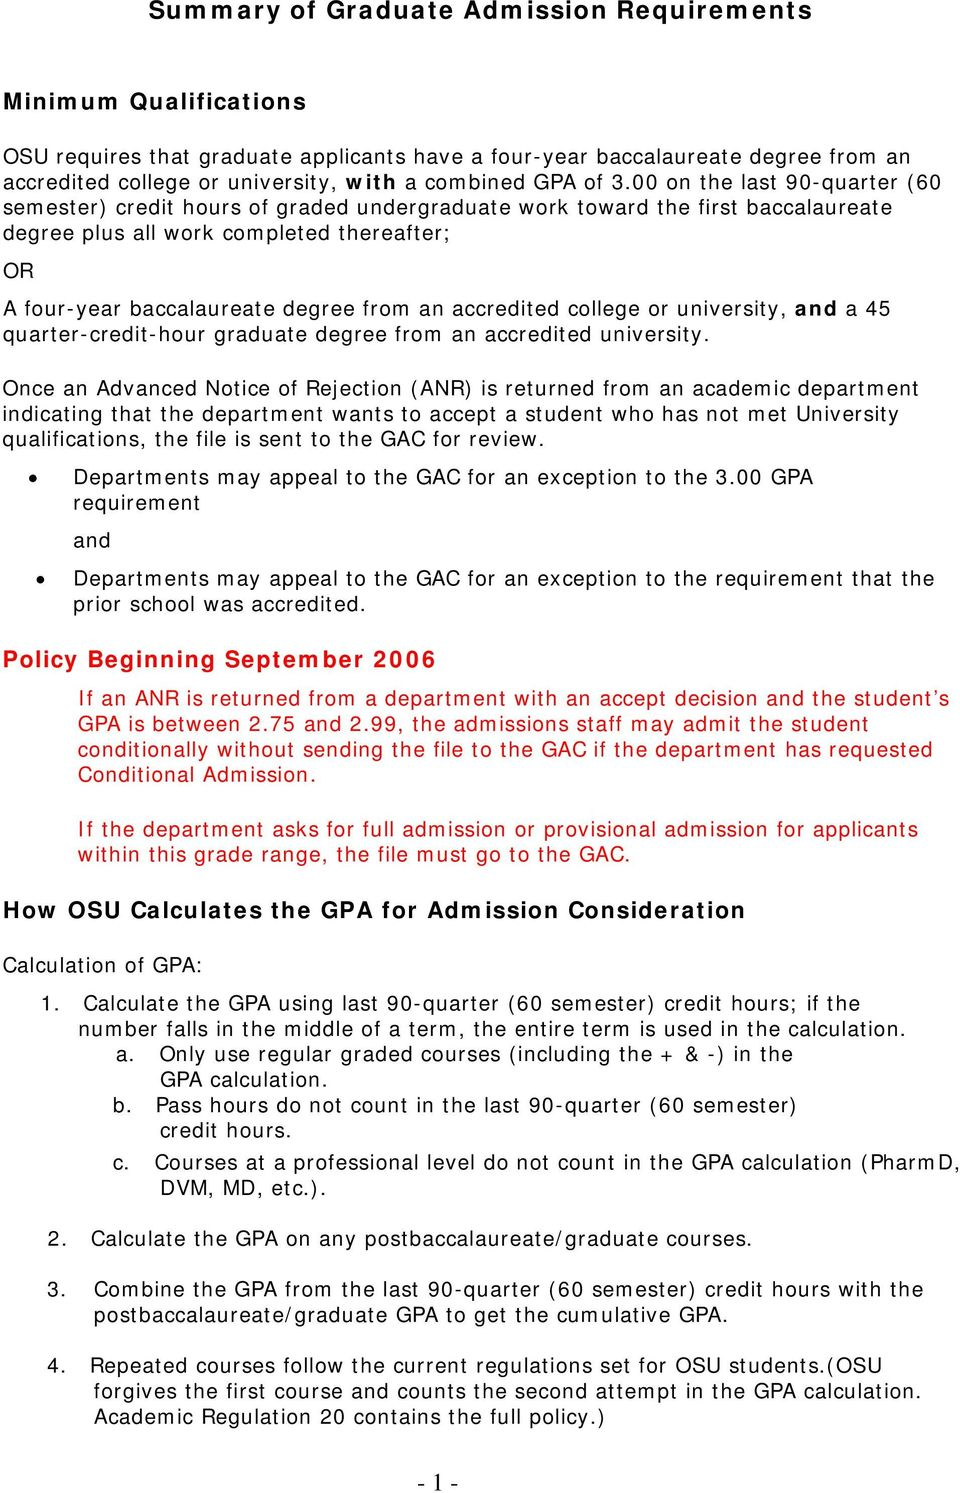 00 on the last 90-quarter (60 semester) credit hours of graded undergraduate work toward the first baccalaureate degree plus all work completed thereafter; OR A four-year baccalaureate degree from an